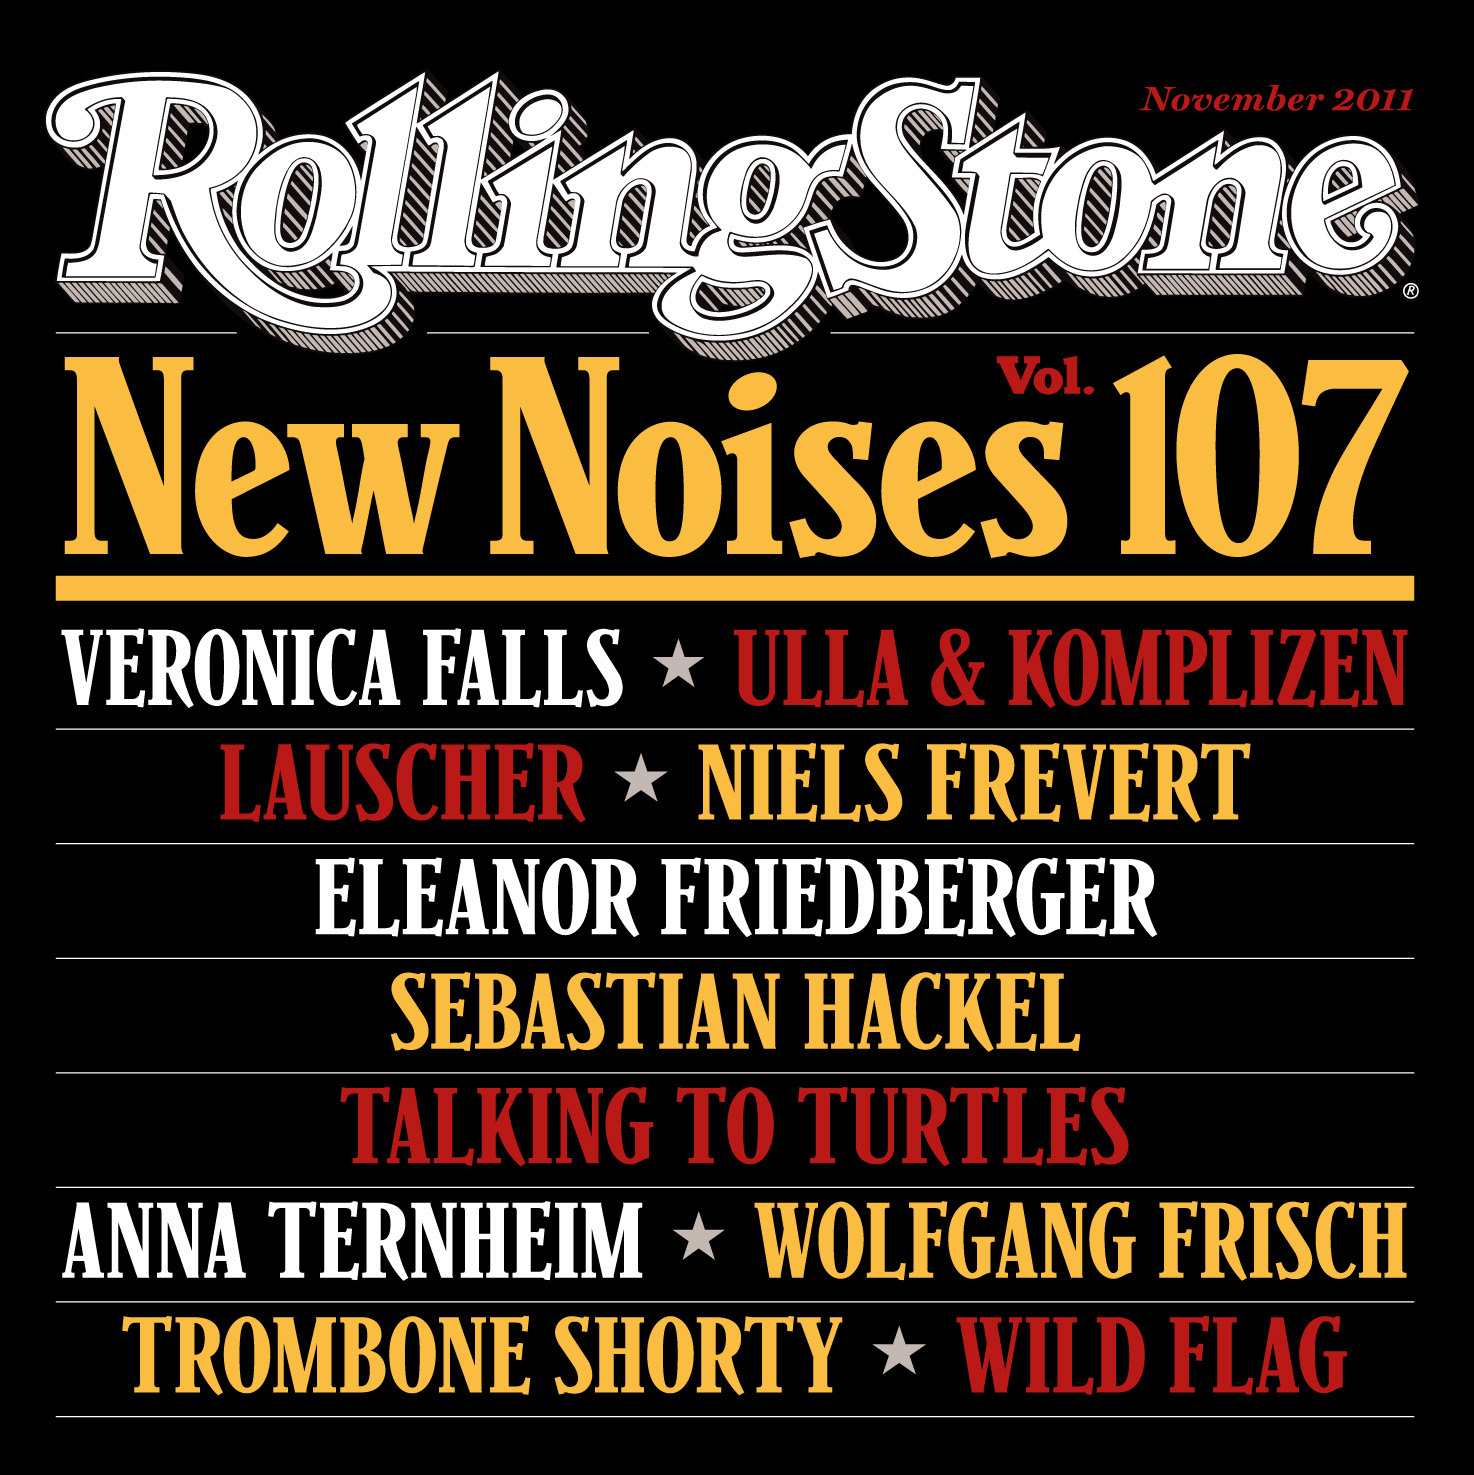 New Noises Vol. 107